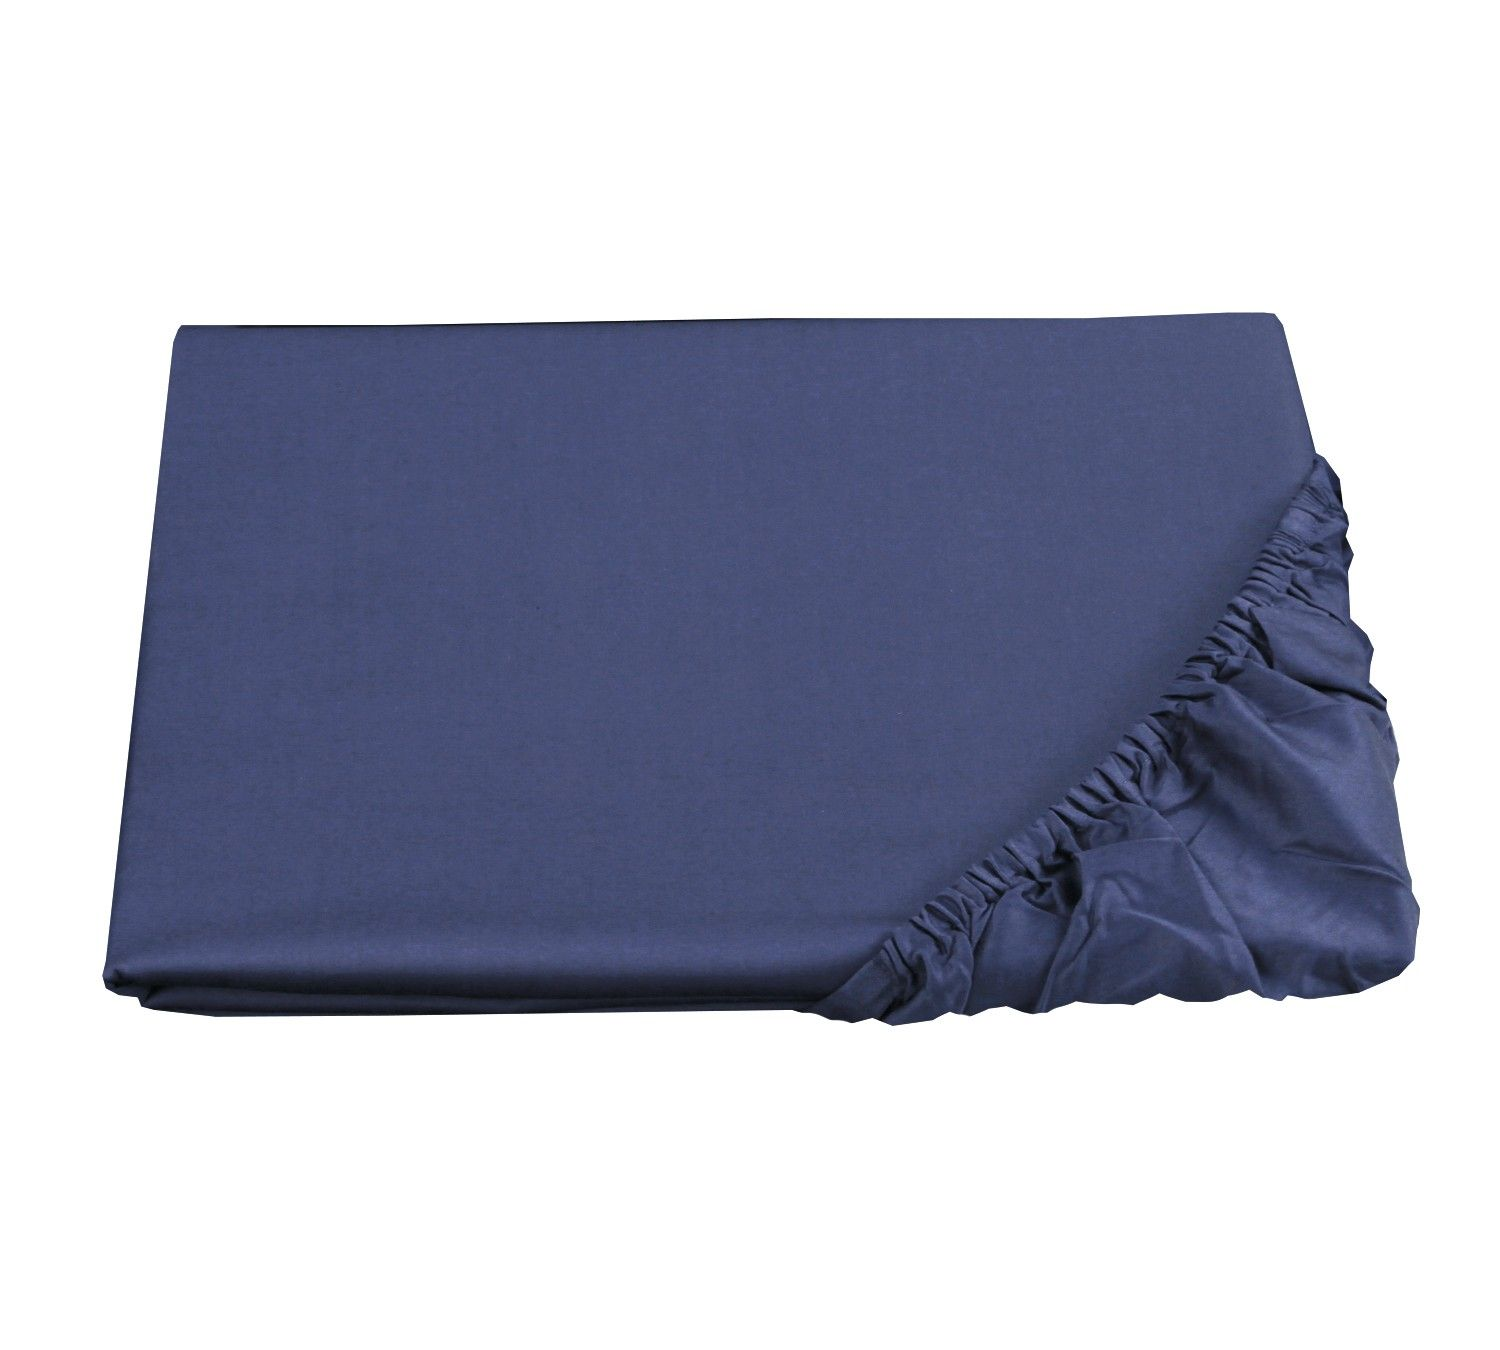 Clive cotton sateen fitted sheet fitted sheet sateen